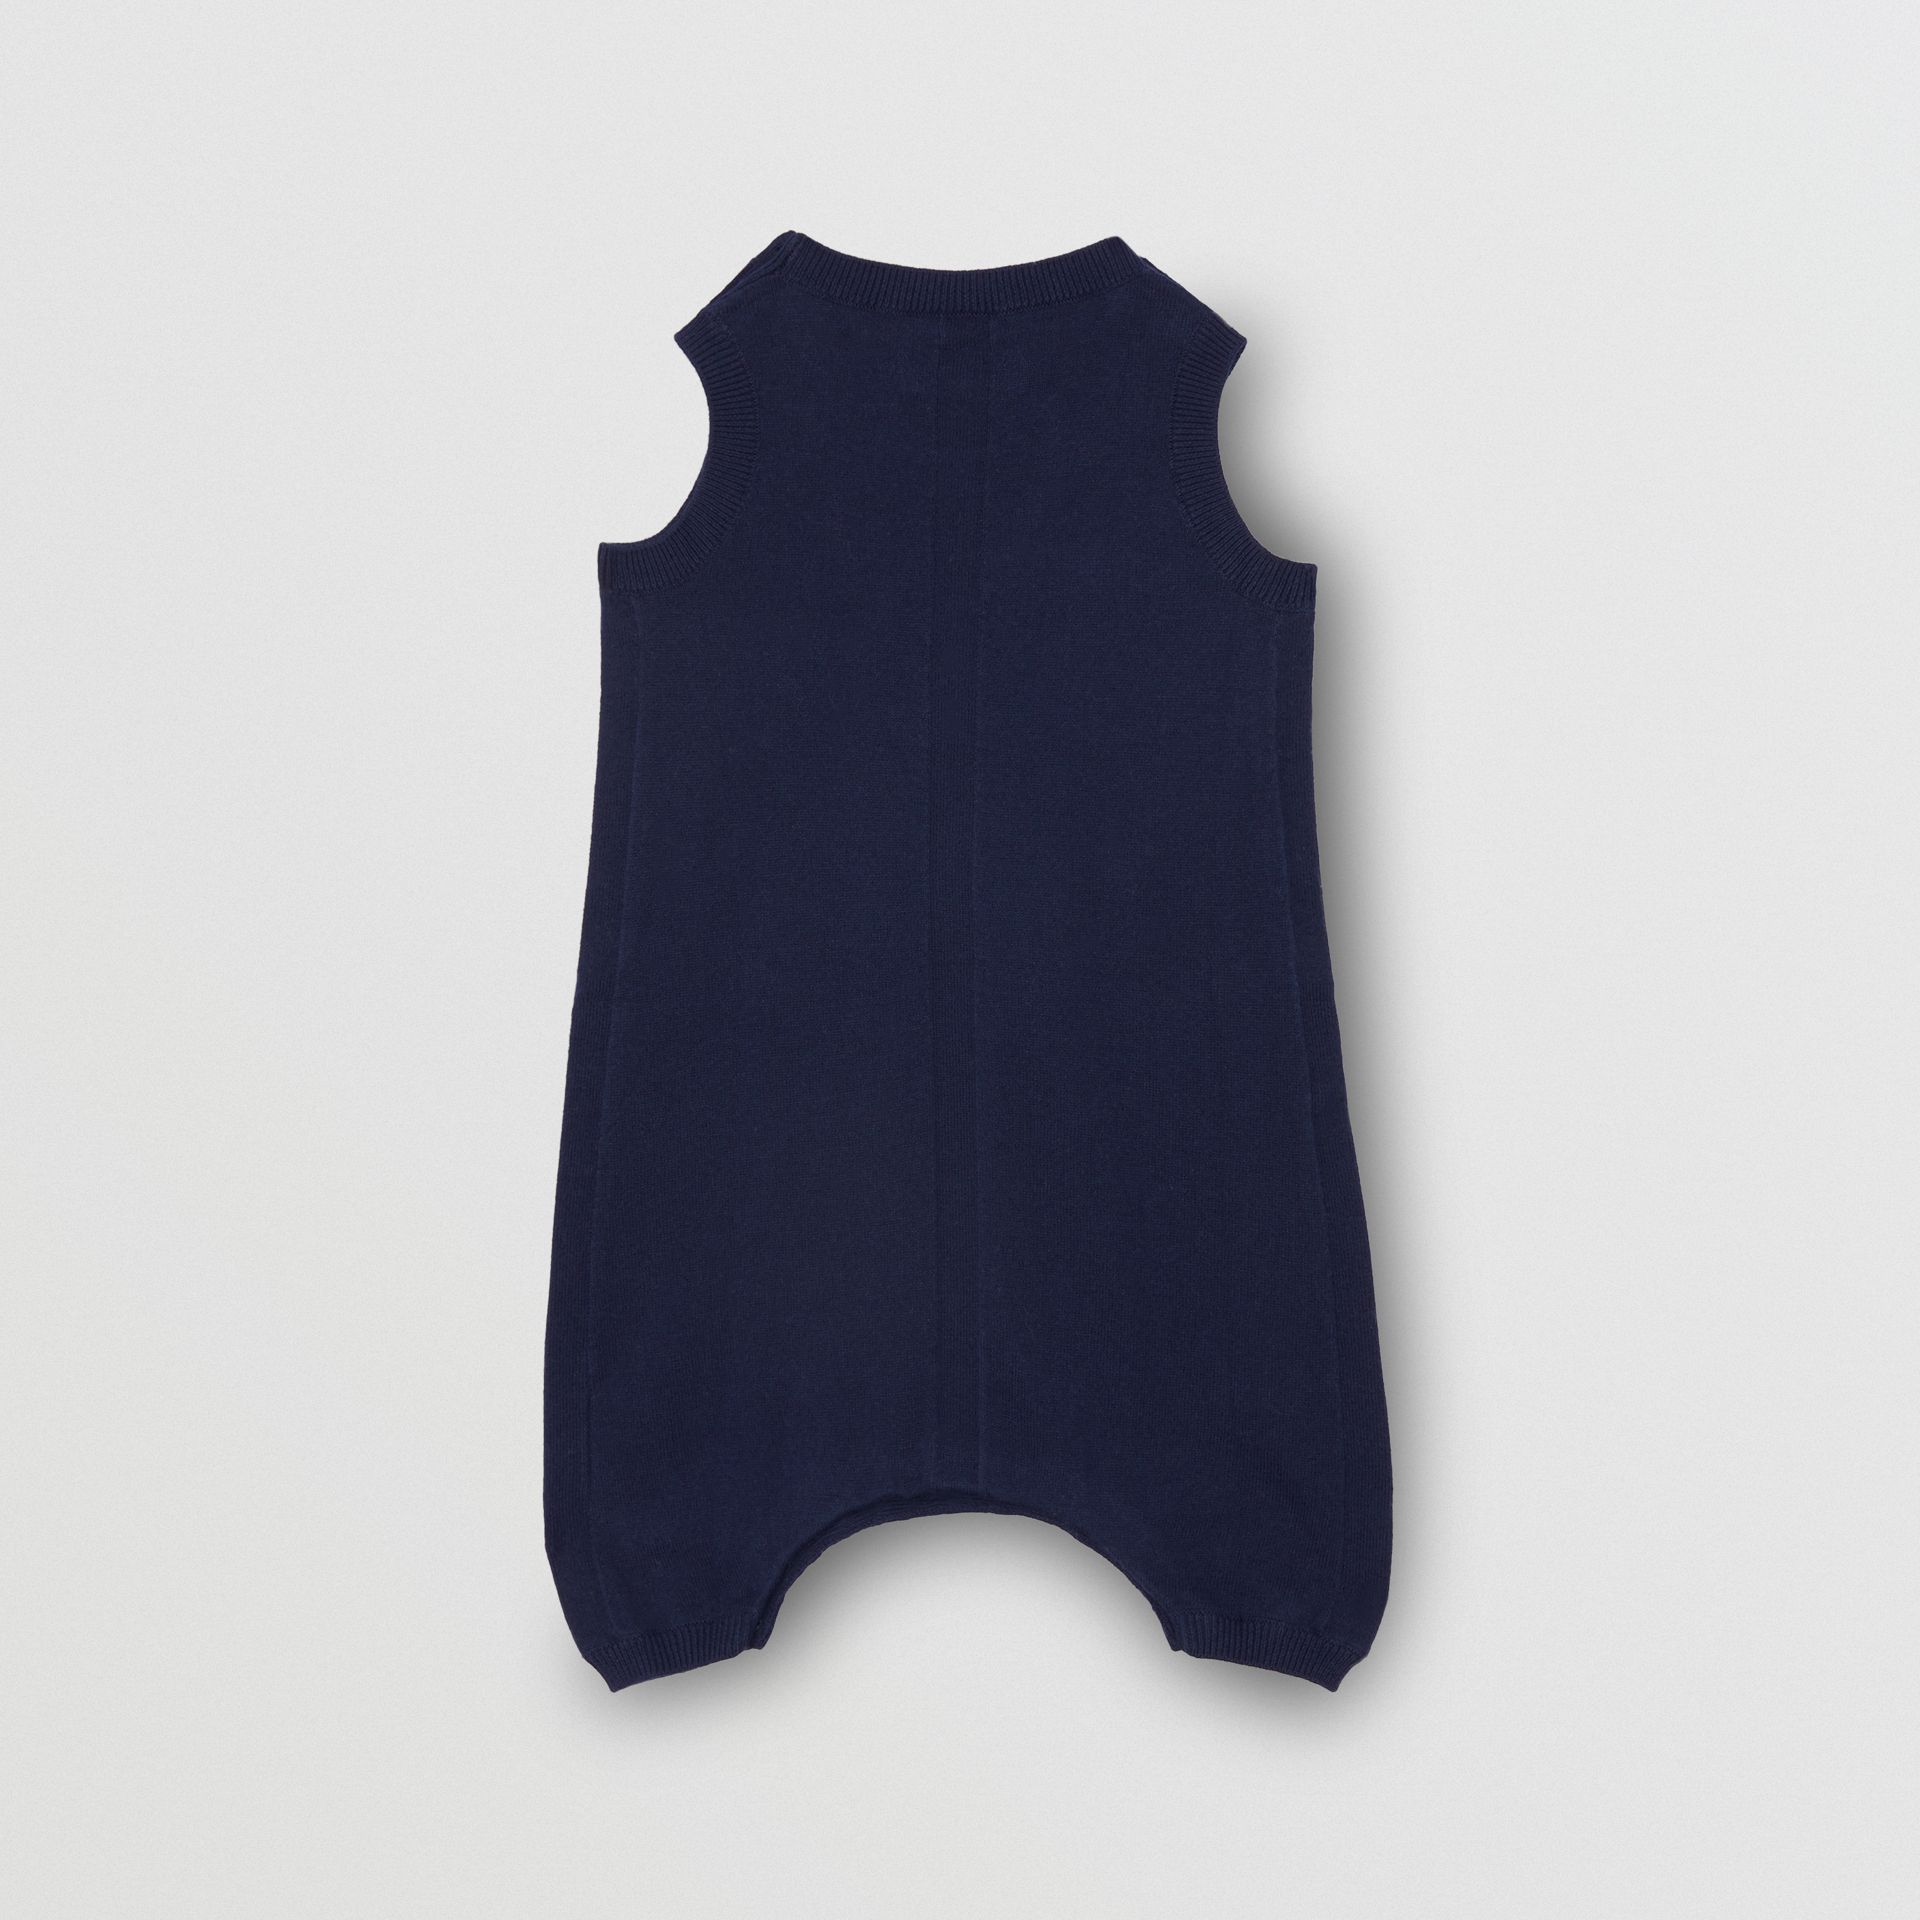 Logo Print Cotton Bodysuit in Indigo - Children | Burberry United Kingdom - gallery image 2